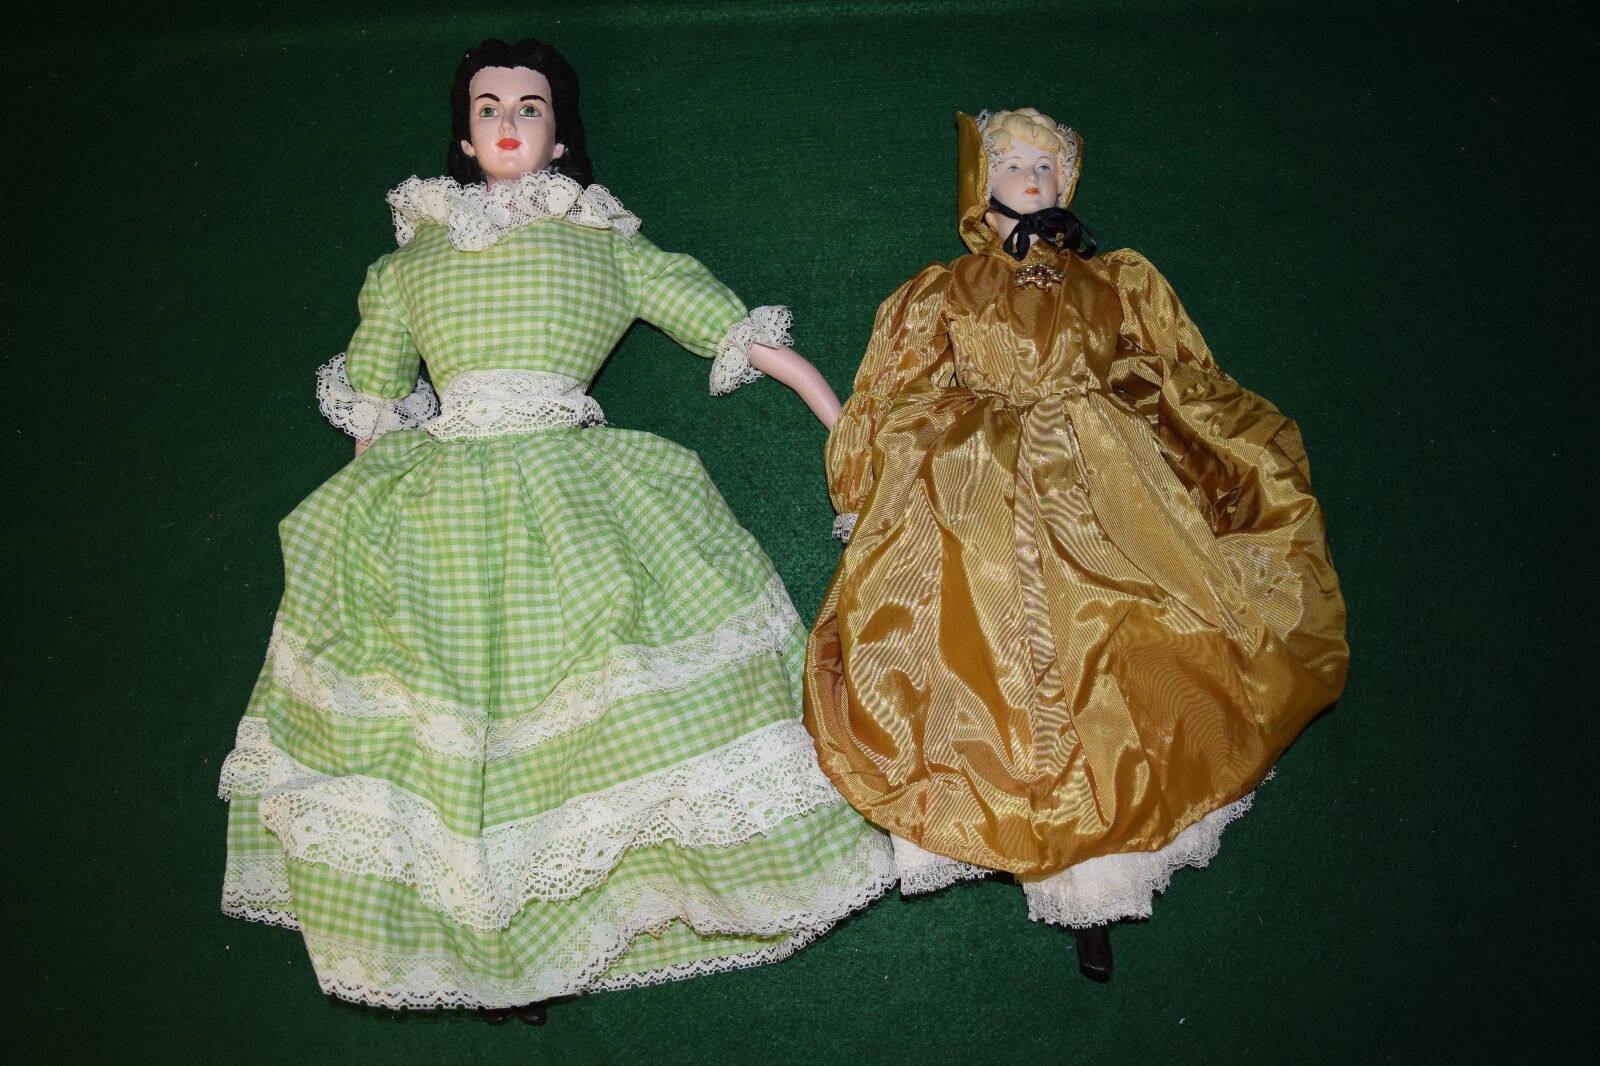 Vintage Pair of Porcelain Head, Arms and Legs Dolls